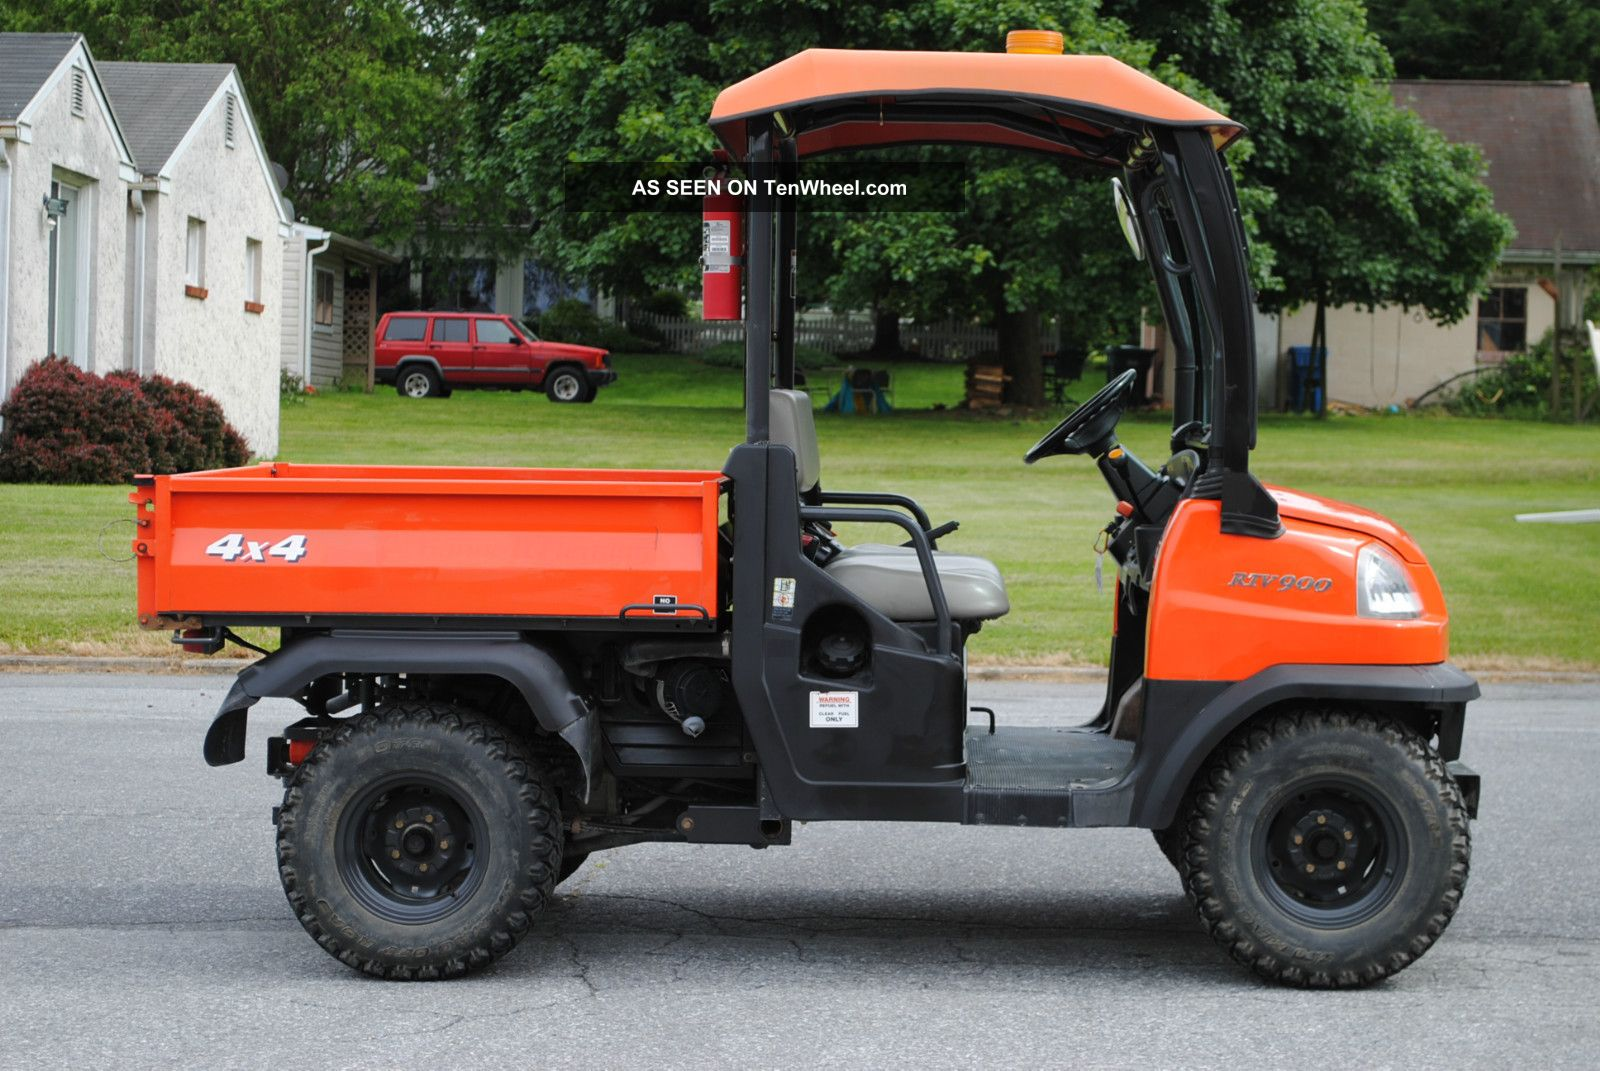 Kubota rtv-900 photo - 4